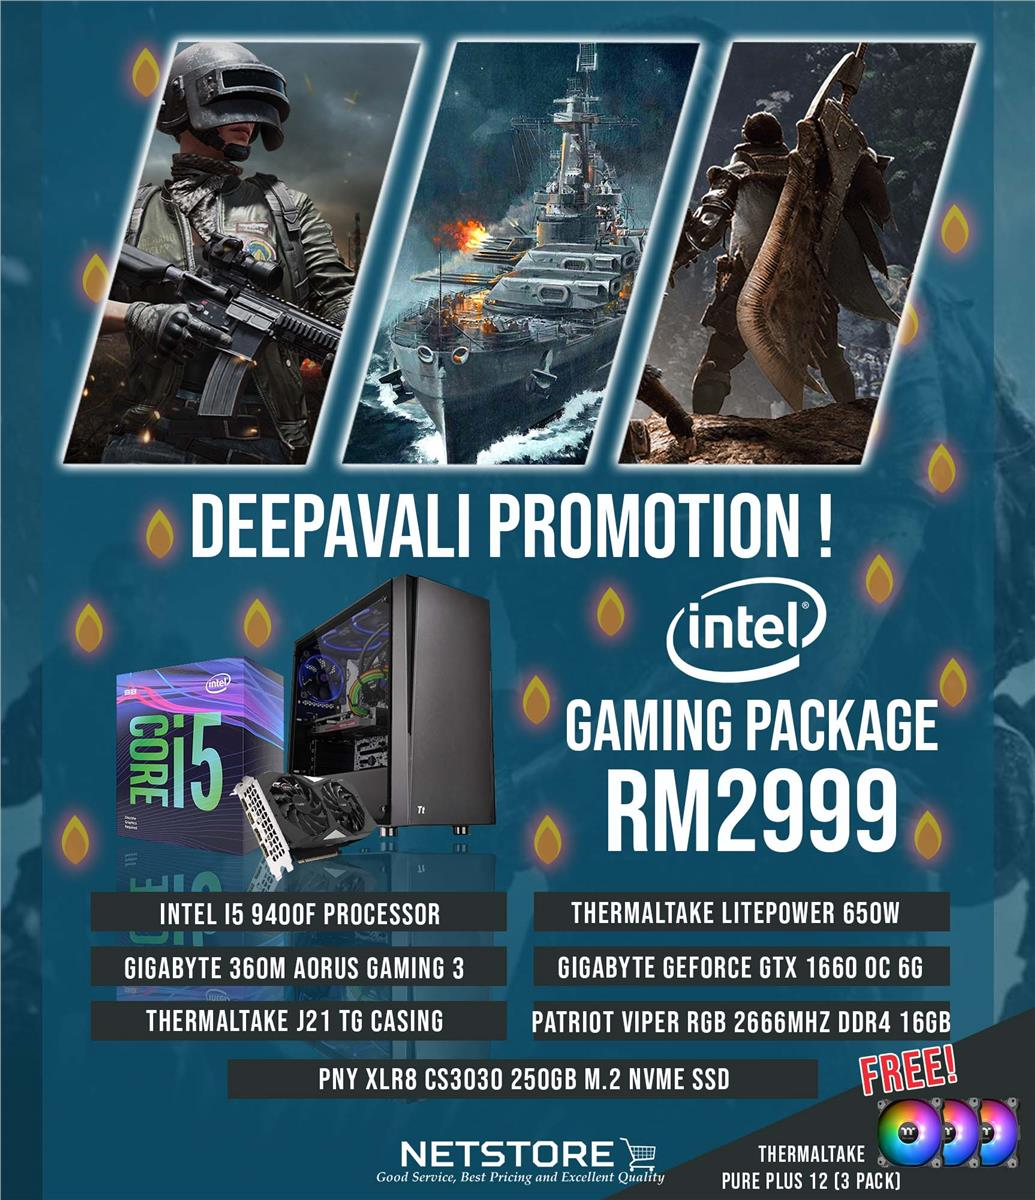 NETSTORE DEEPAVALI 2019 INTEL I5 RGB PC PACKAGE - LIMITED TIME OFFER